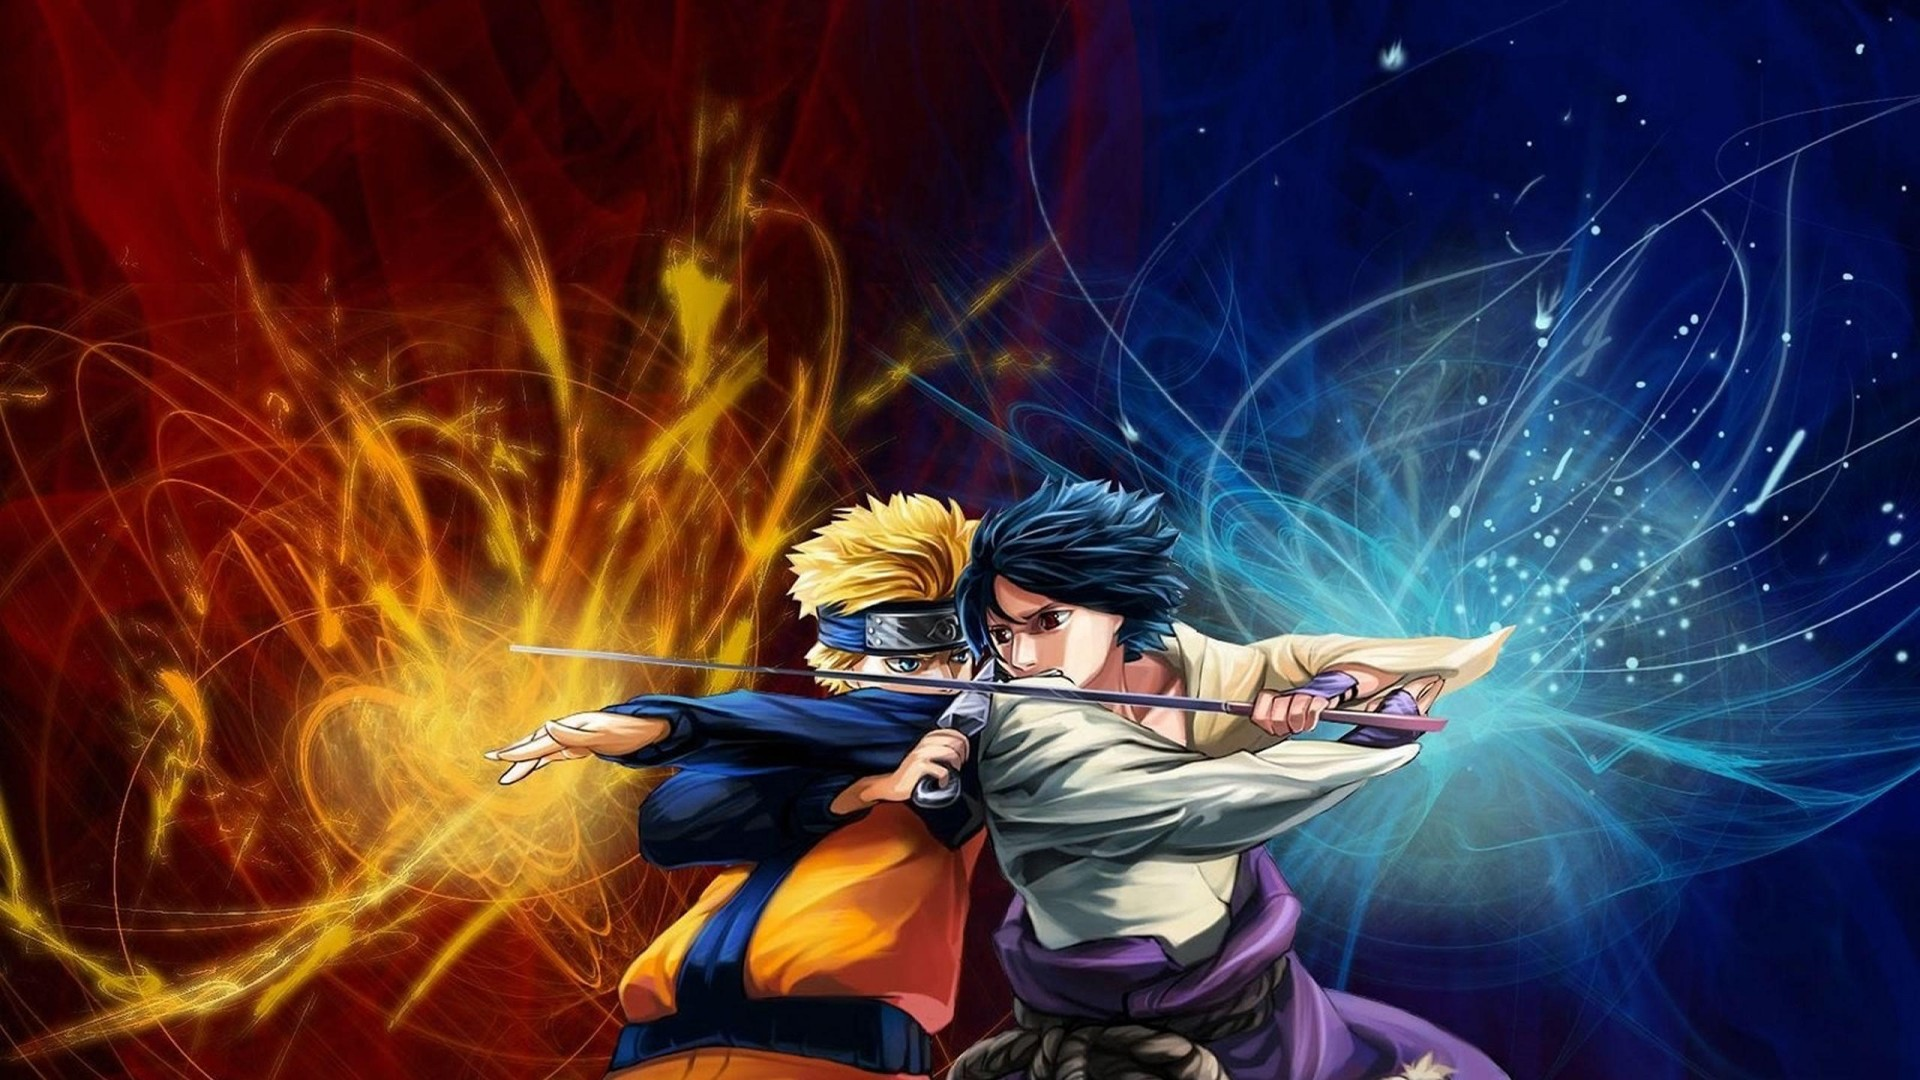 s4nd_naruto-hd-wallpaper-1920x1080px-hd-wallpapers-anime-picture-naruto-hd-wallpaper